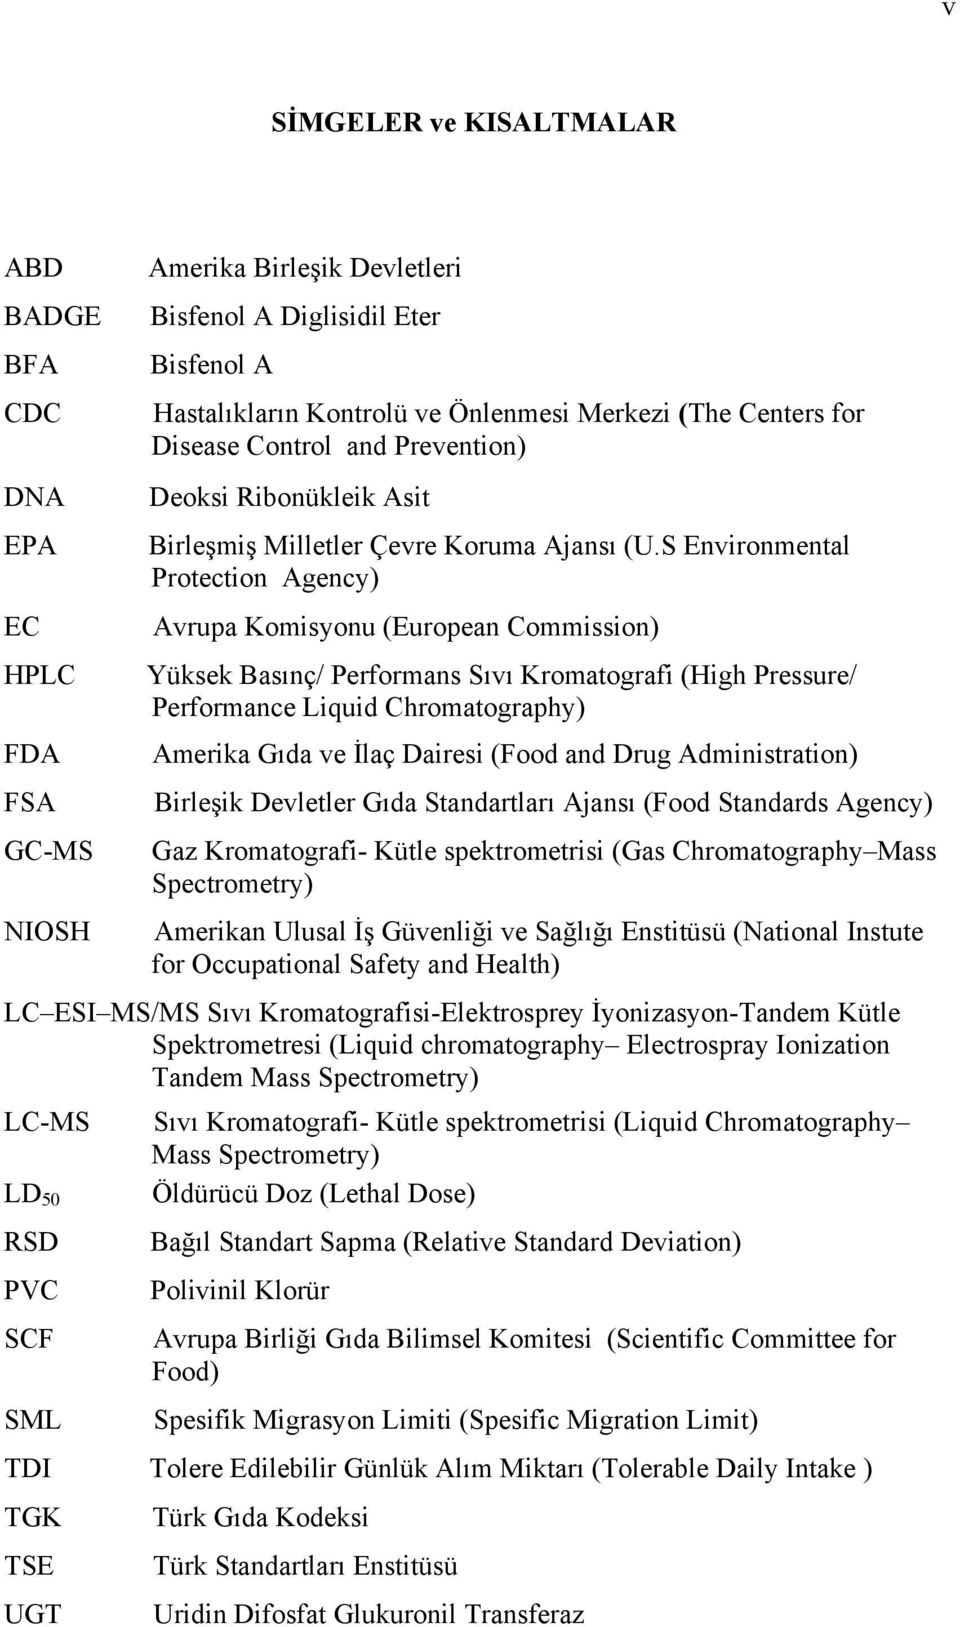 S Environmental Protection Agency) Avrupa Komisyonu (European Commission) Yüksek Basınç/ Performans Sıvı Kromatografi (High Pressure/ Performance Liquid Chromatography) Amerika Gıda ve İlaç Dairesi